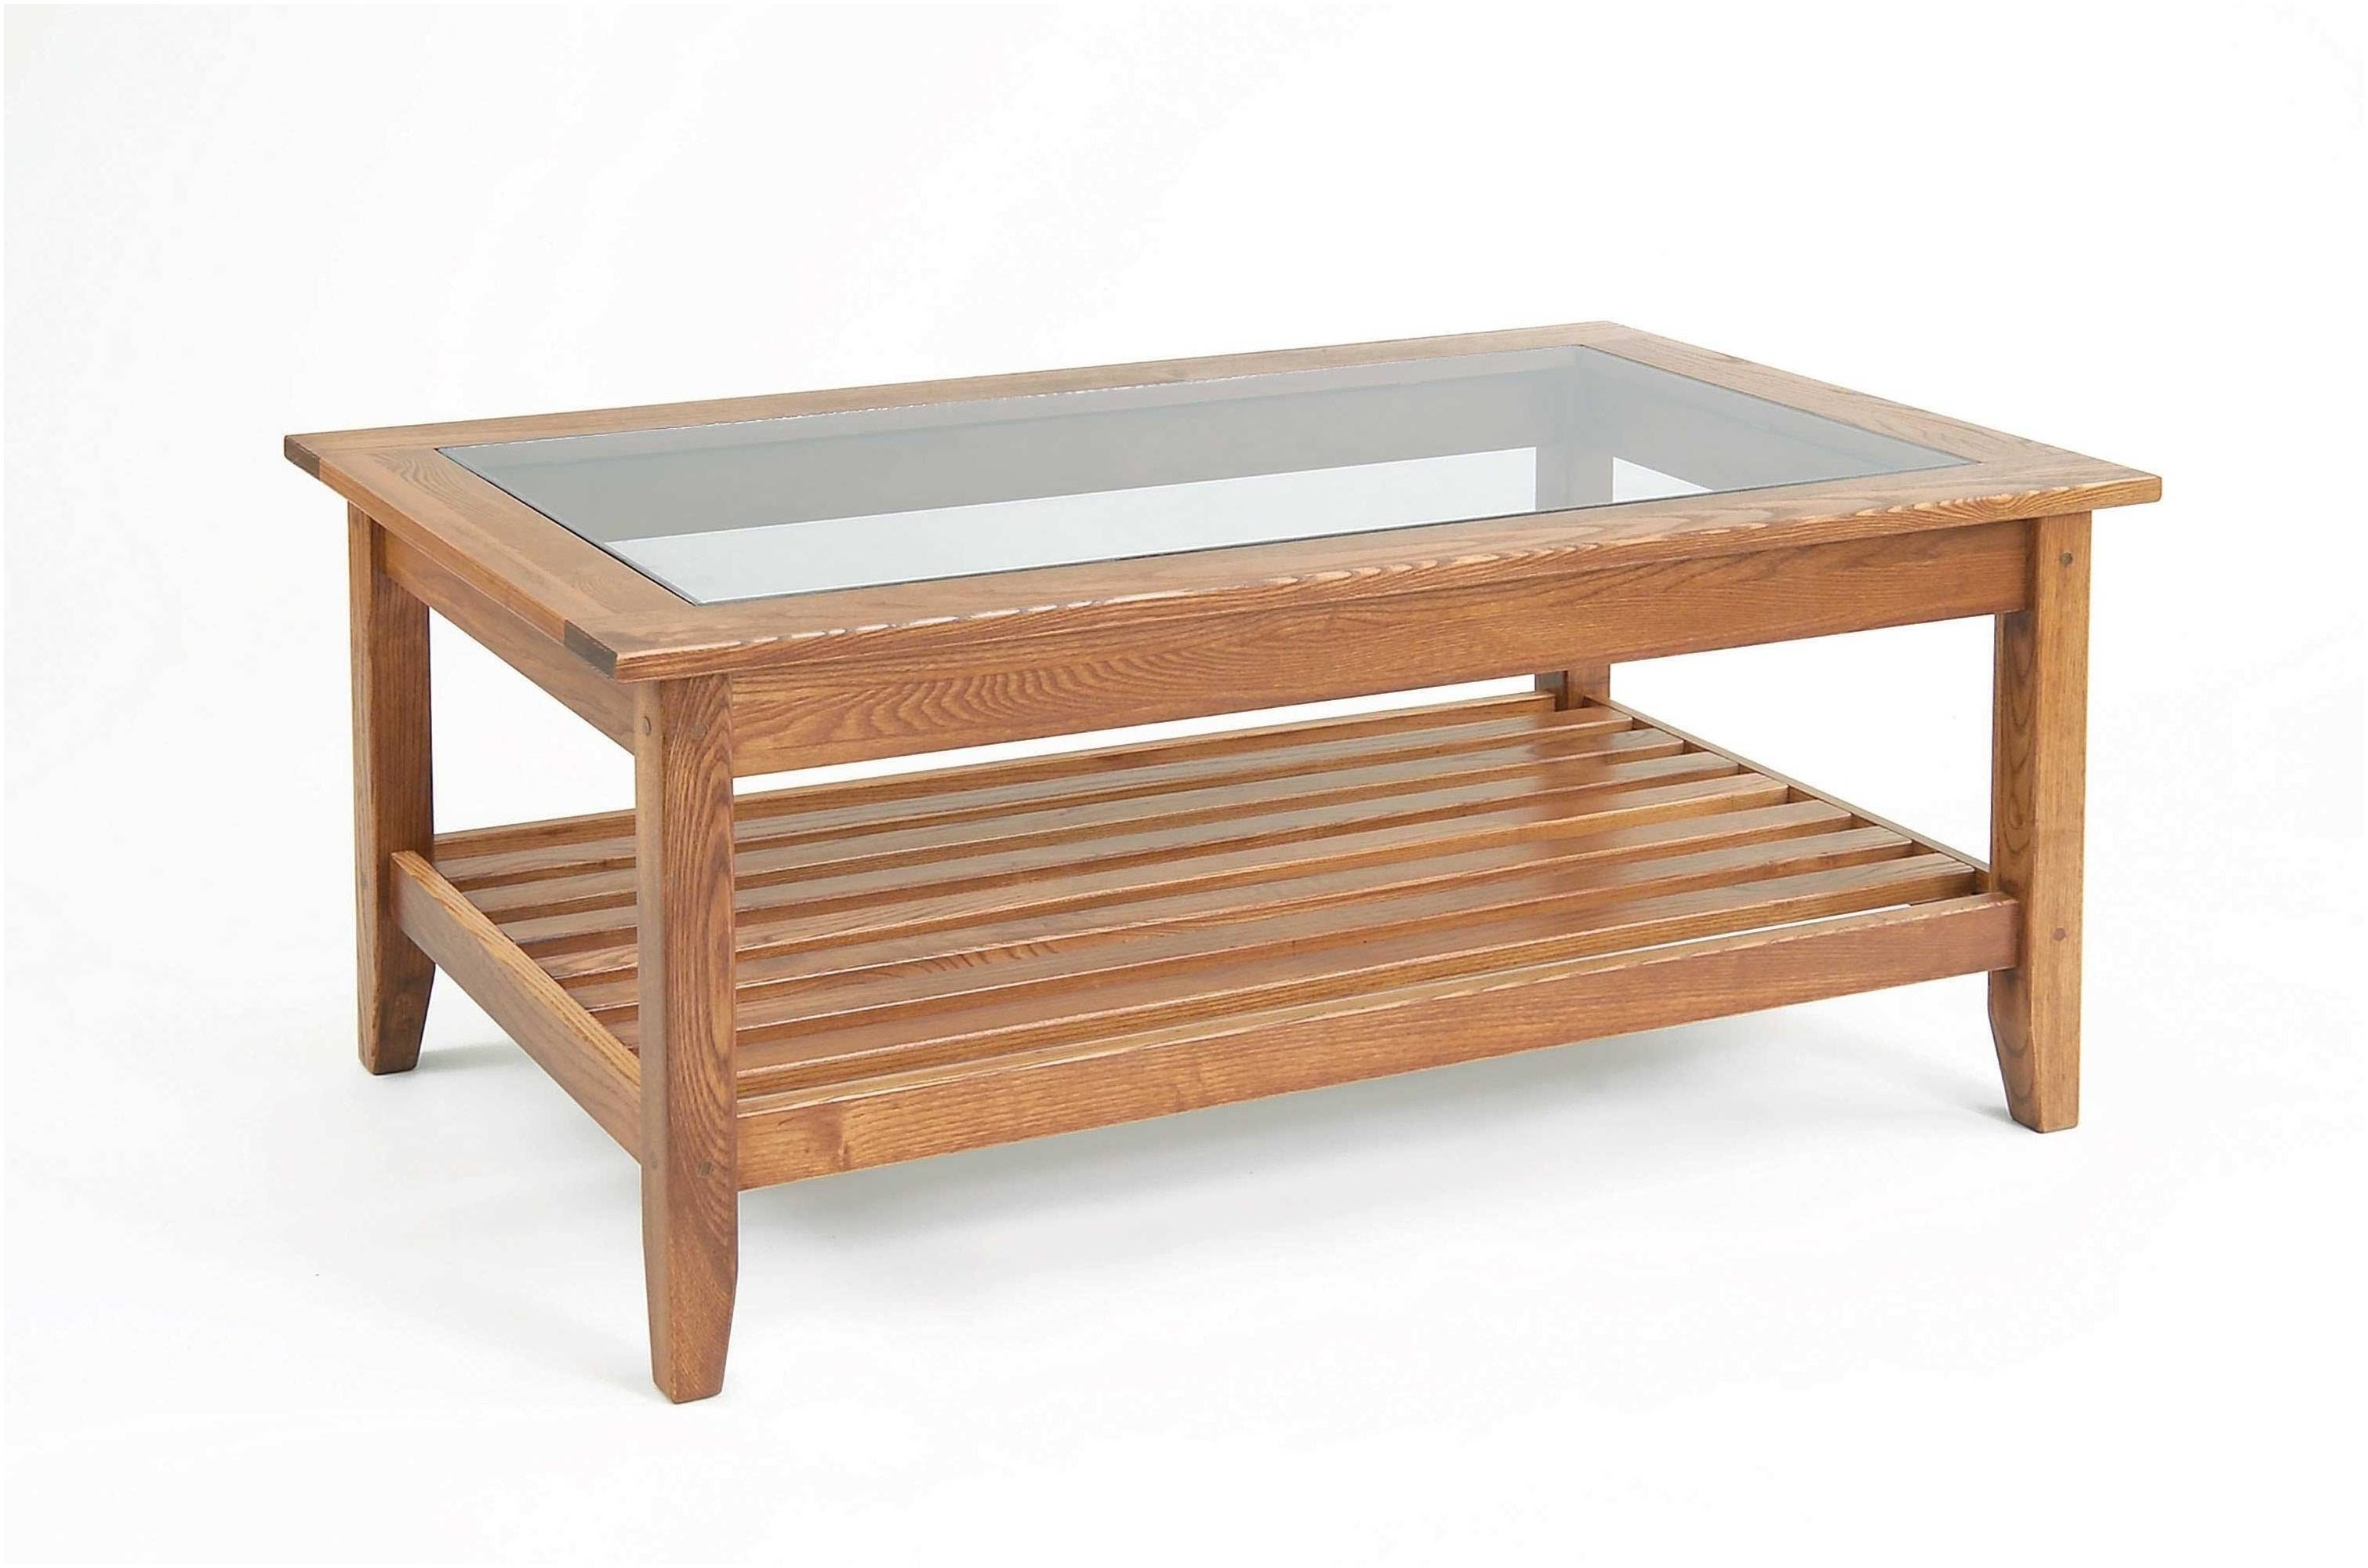 Antique Glass Coffee Table As – Cocinacentral.co throughout Retro Glass Coffee Tables (Image 3 of 30)